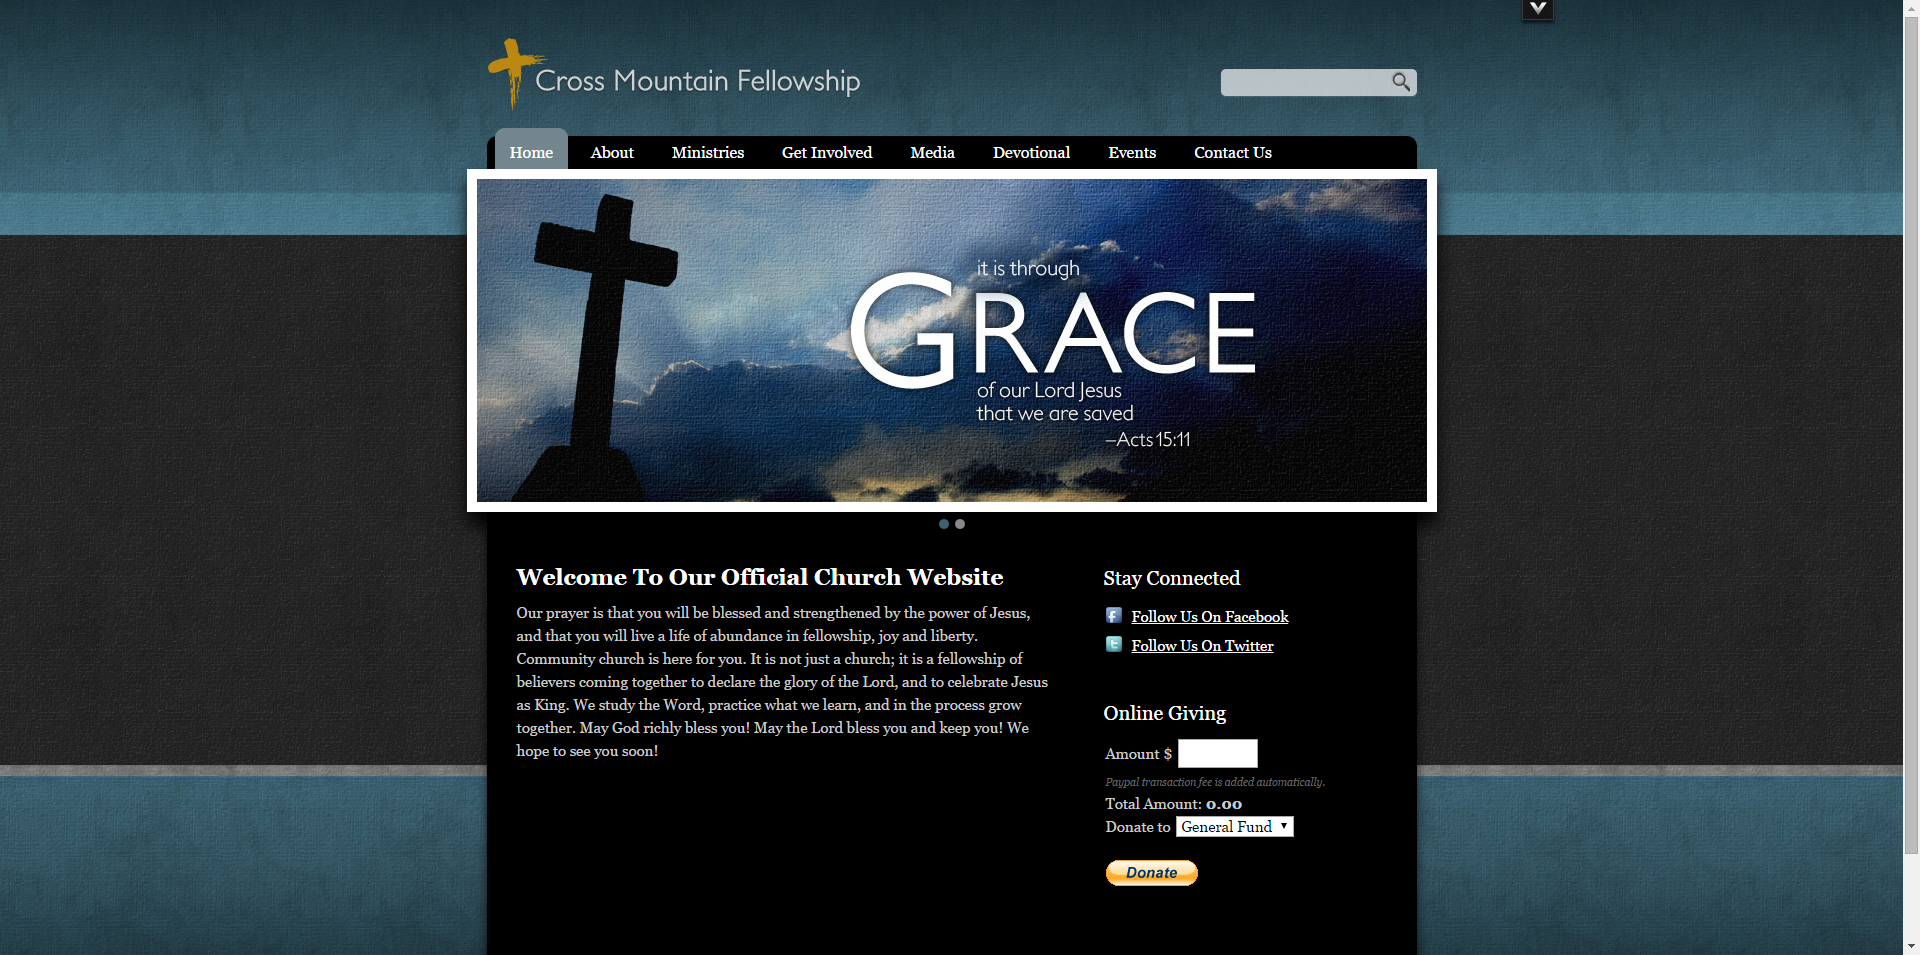 30 best church website templates for ministry and outreach Website home image